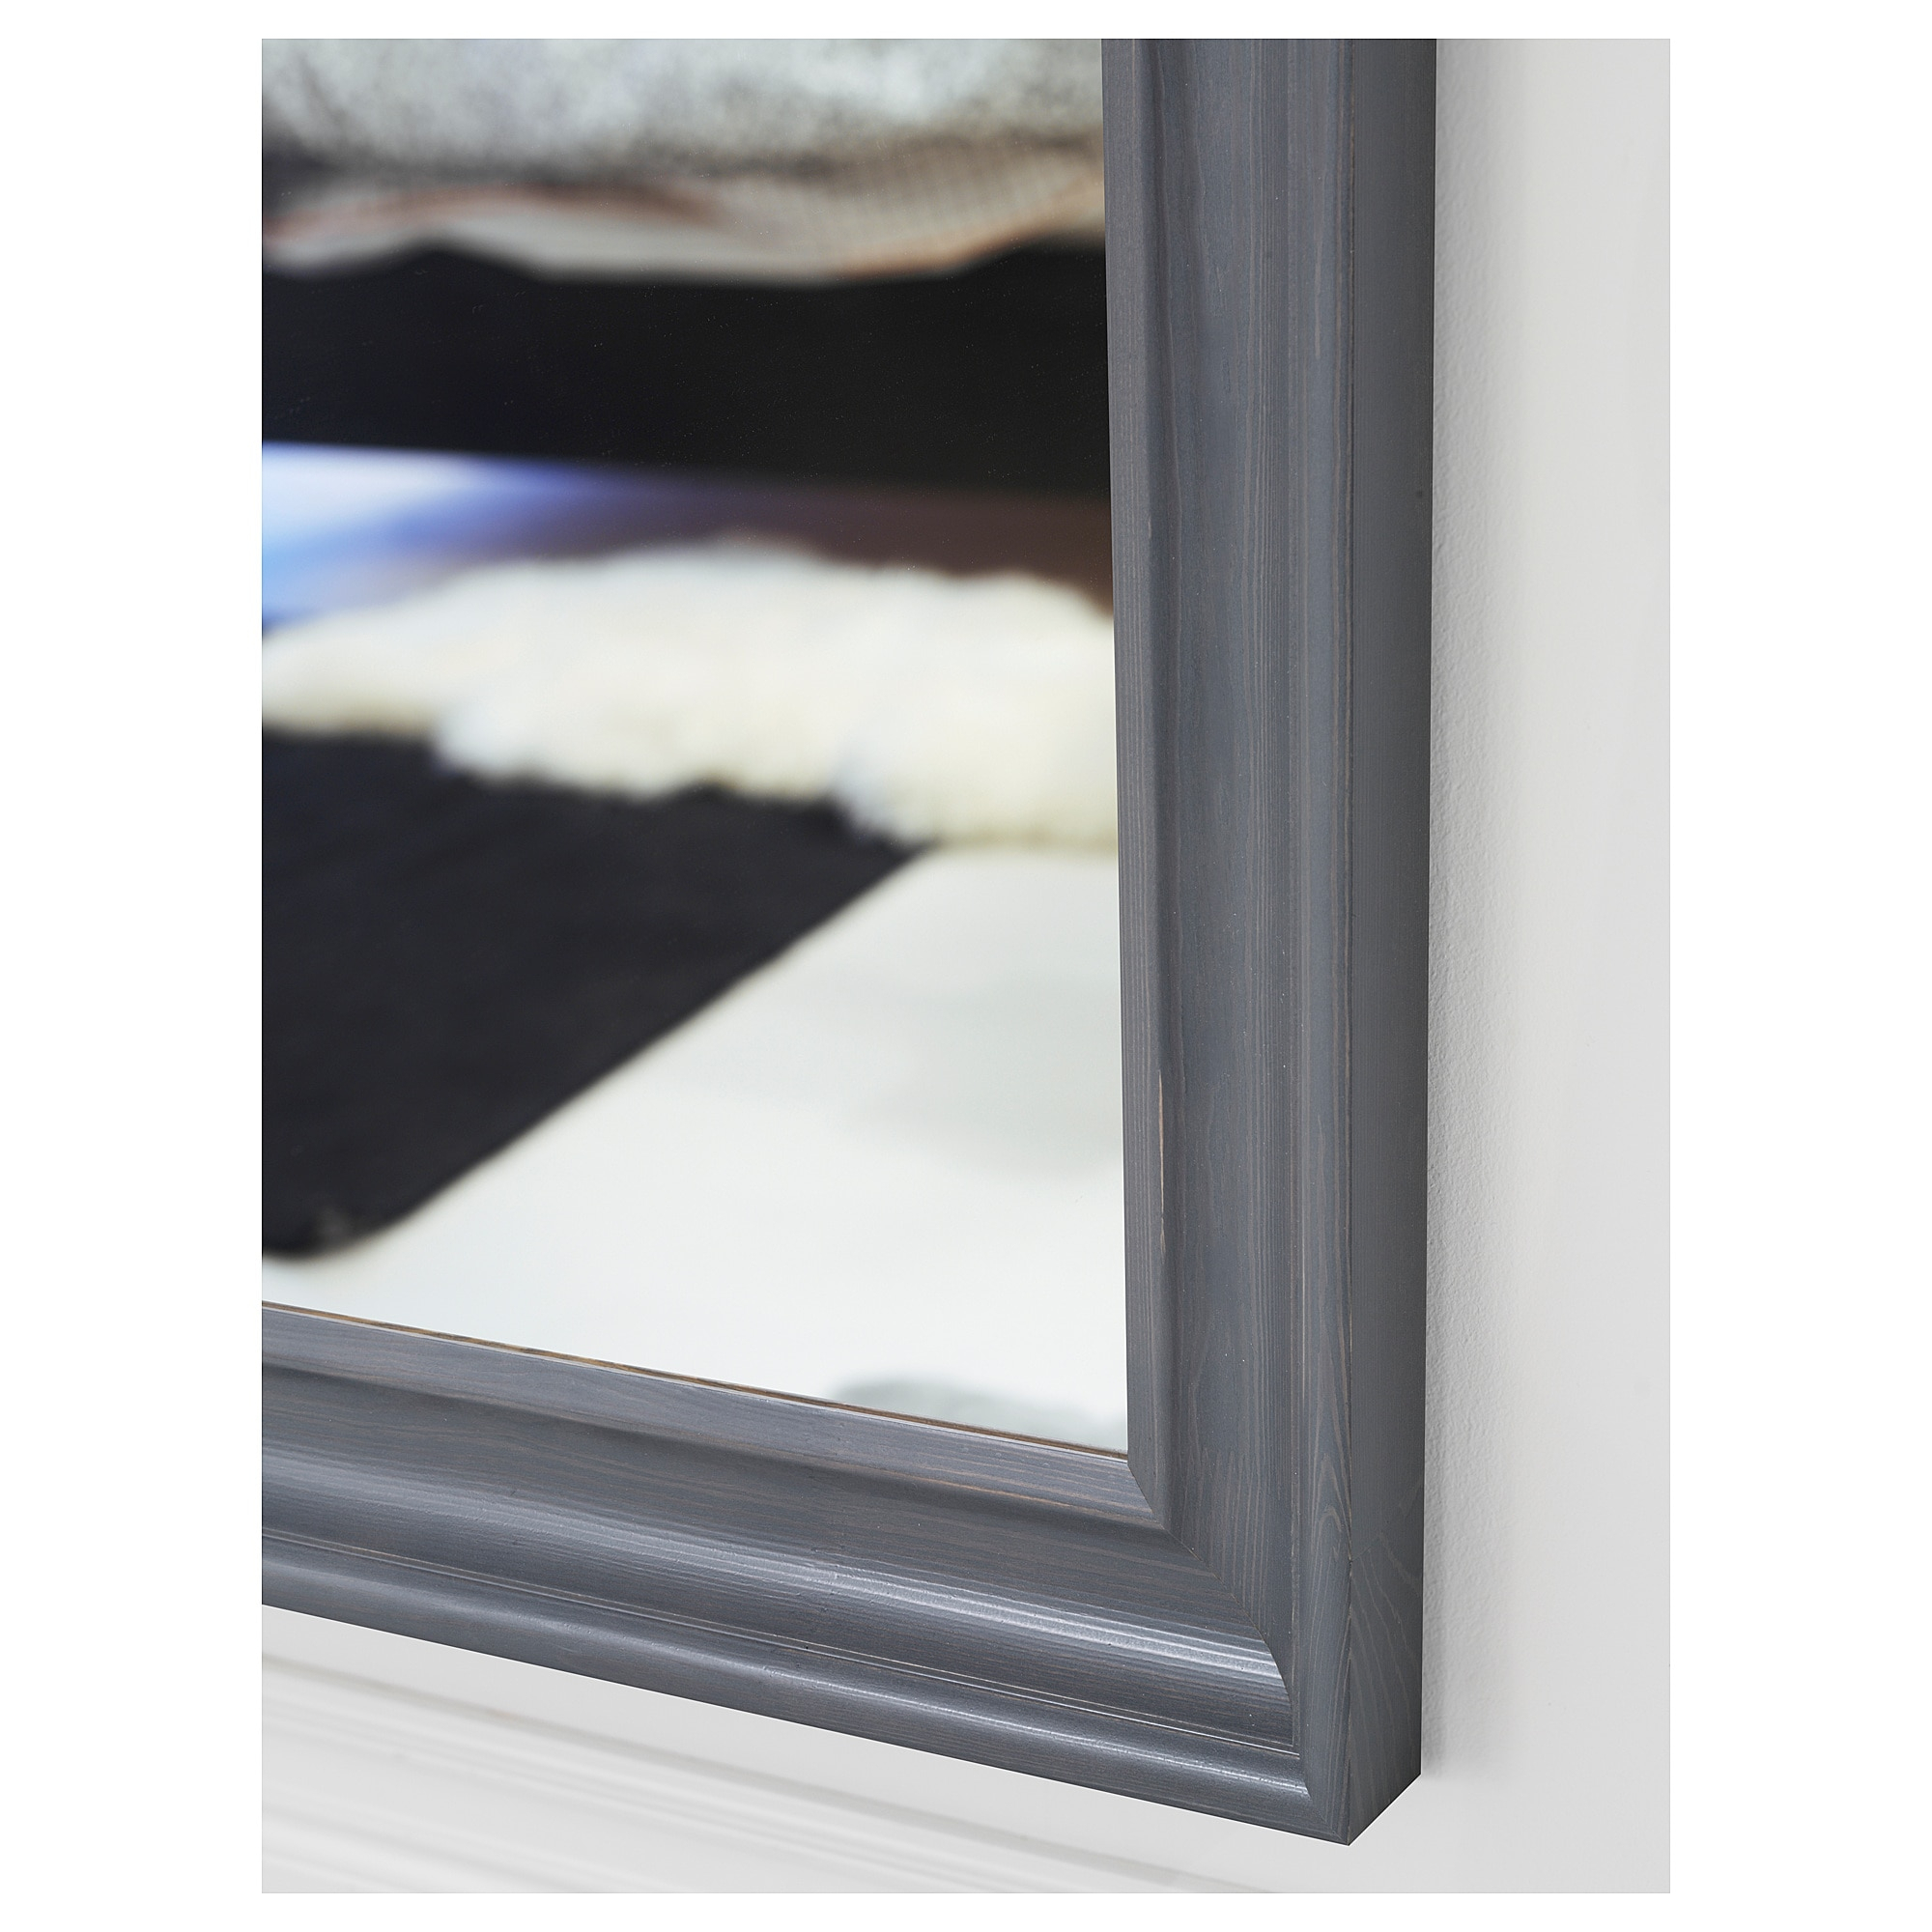 Hemnes – Mirror, Gray Stained Regarding Northend Wall Mirrors (View 11 of 20)